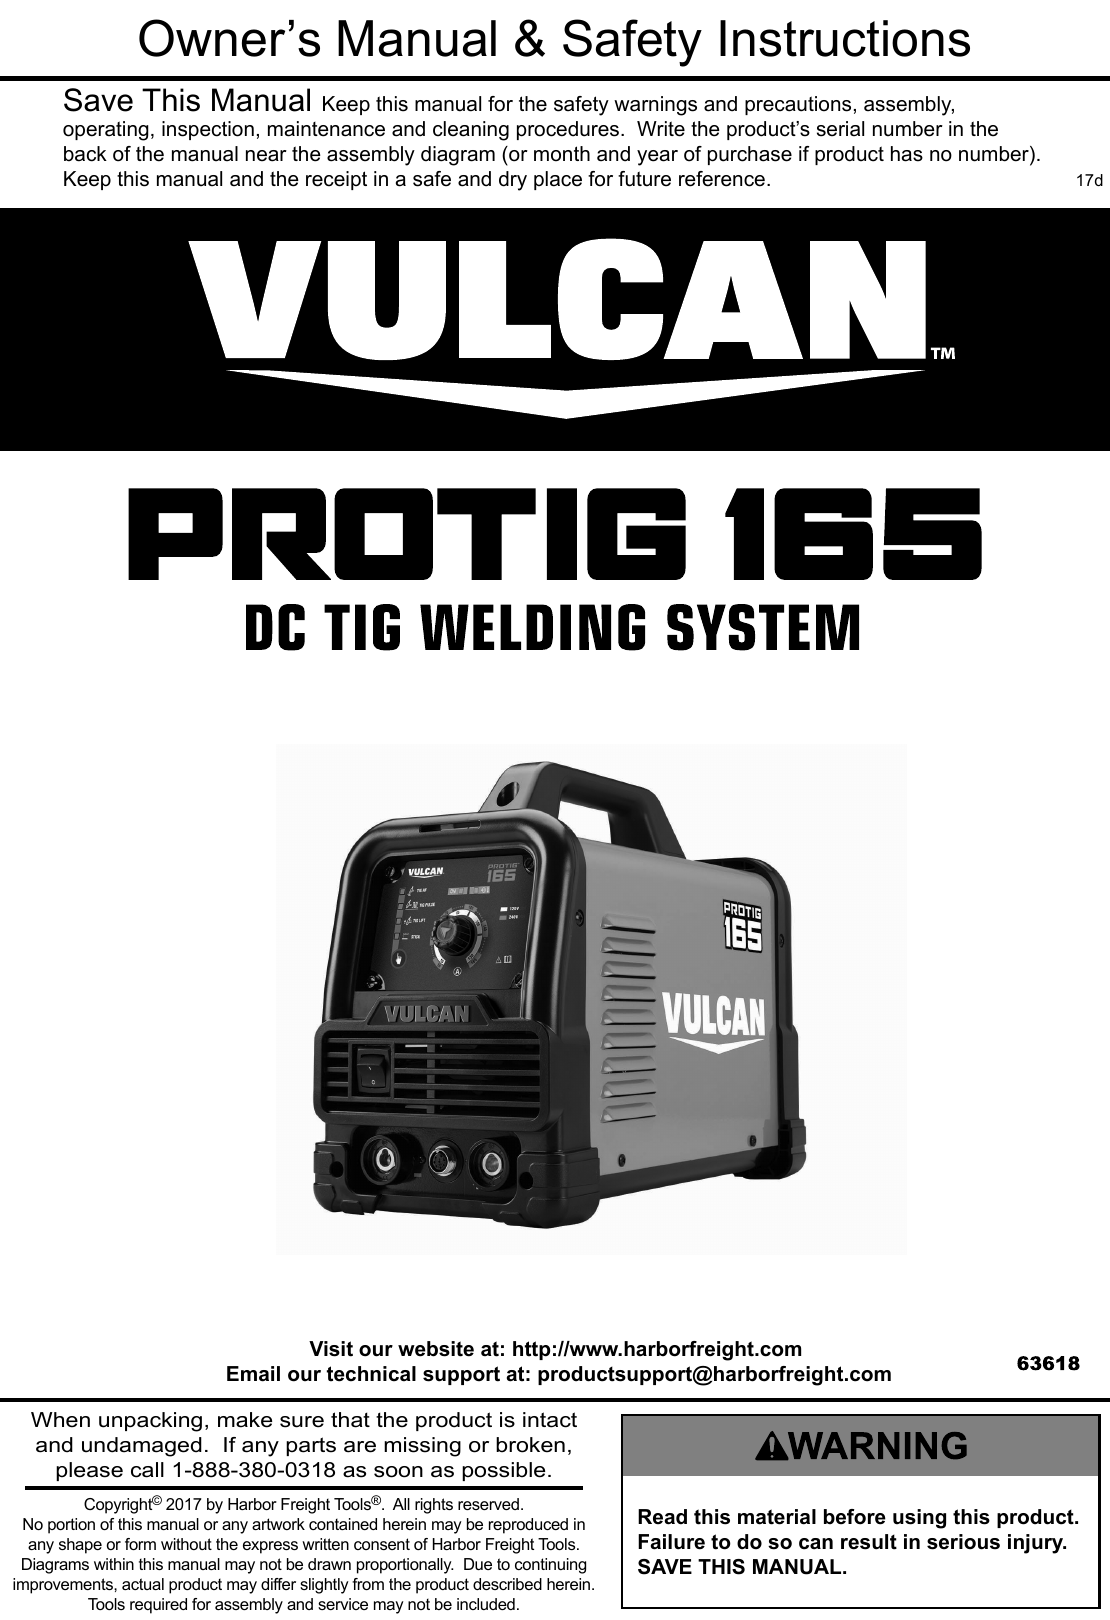 Manual For The 63618 Pro Tig 165 Welder With 120 240 Volt Input Diagram Of Welding Tools